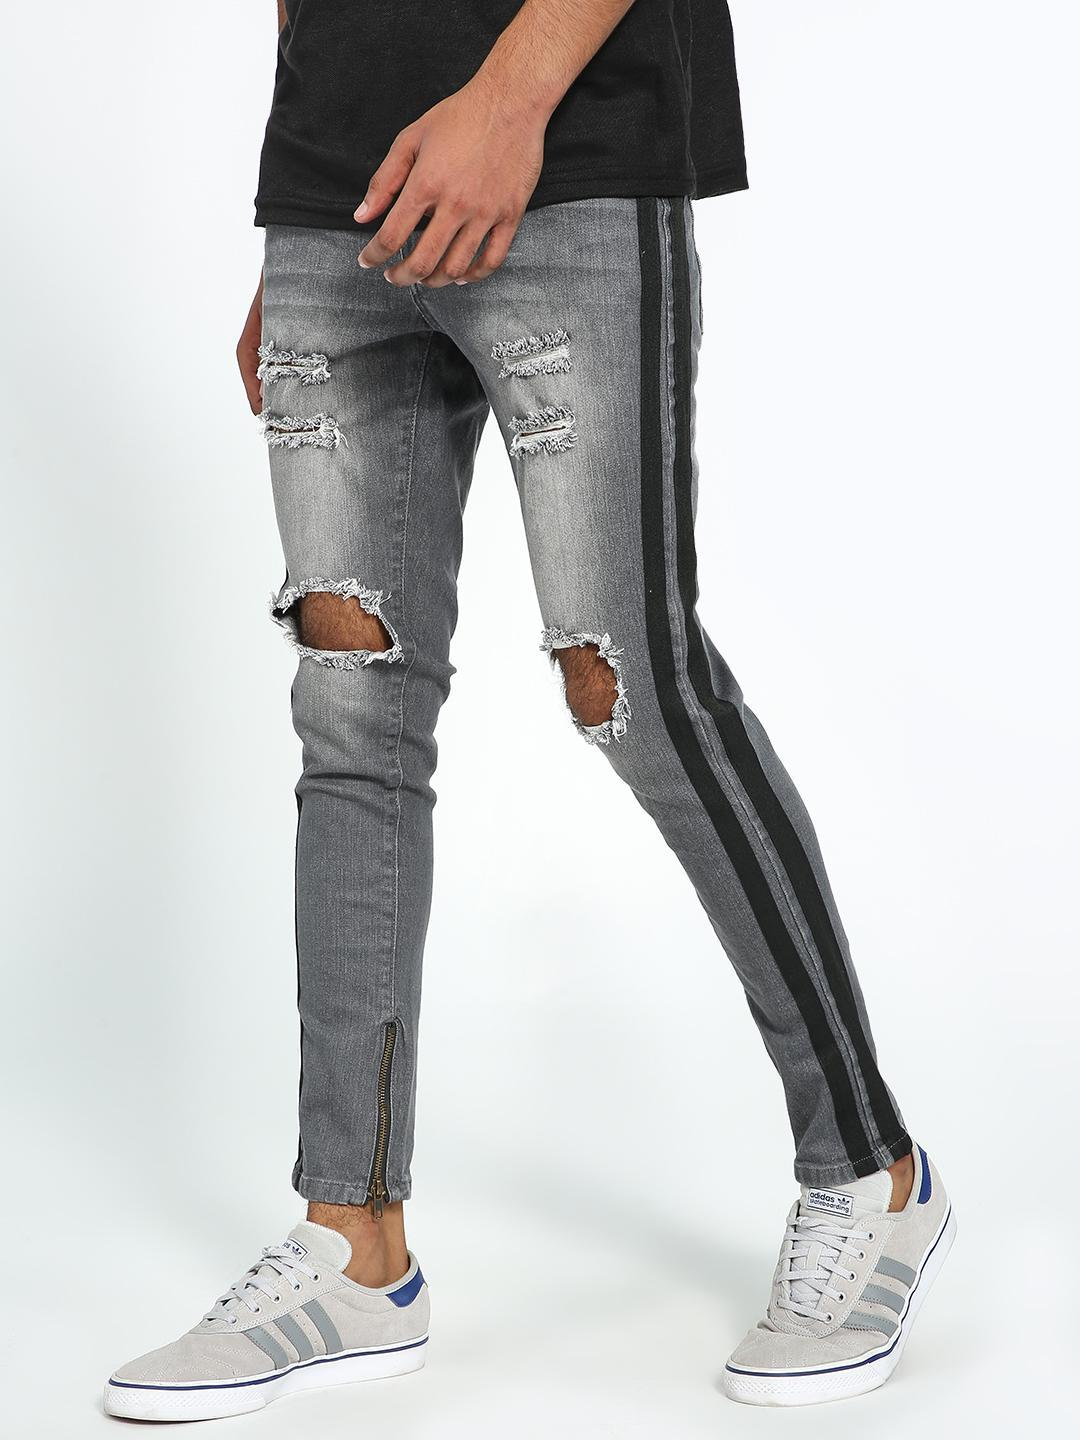 Kultprit Grey Side Tape Washed Ripped Skinny Jeans 1